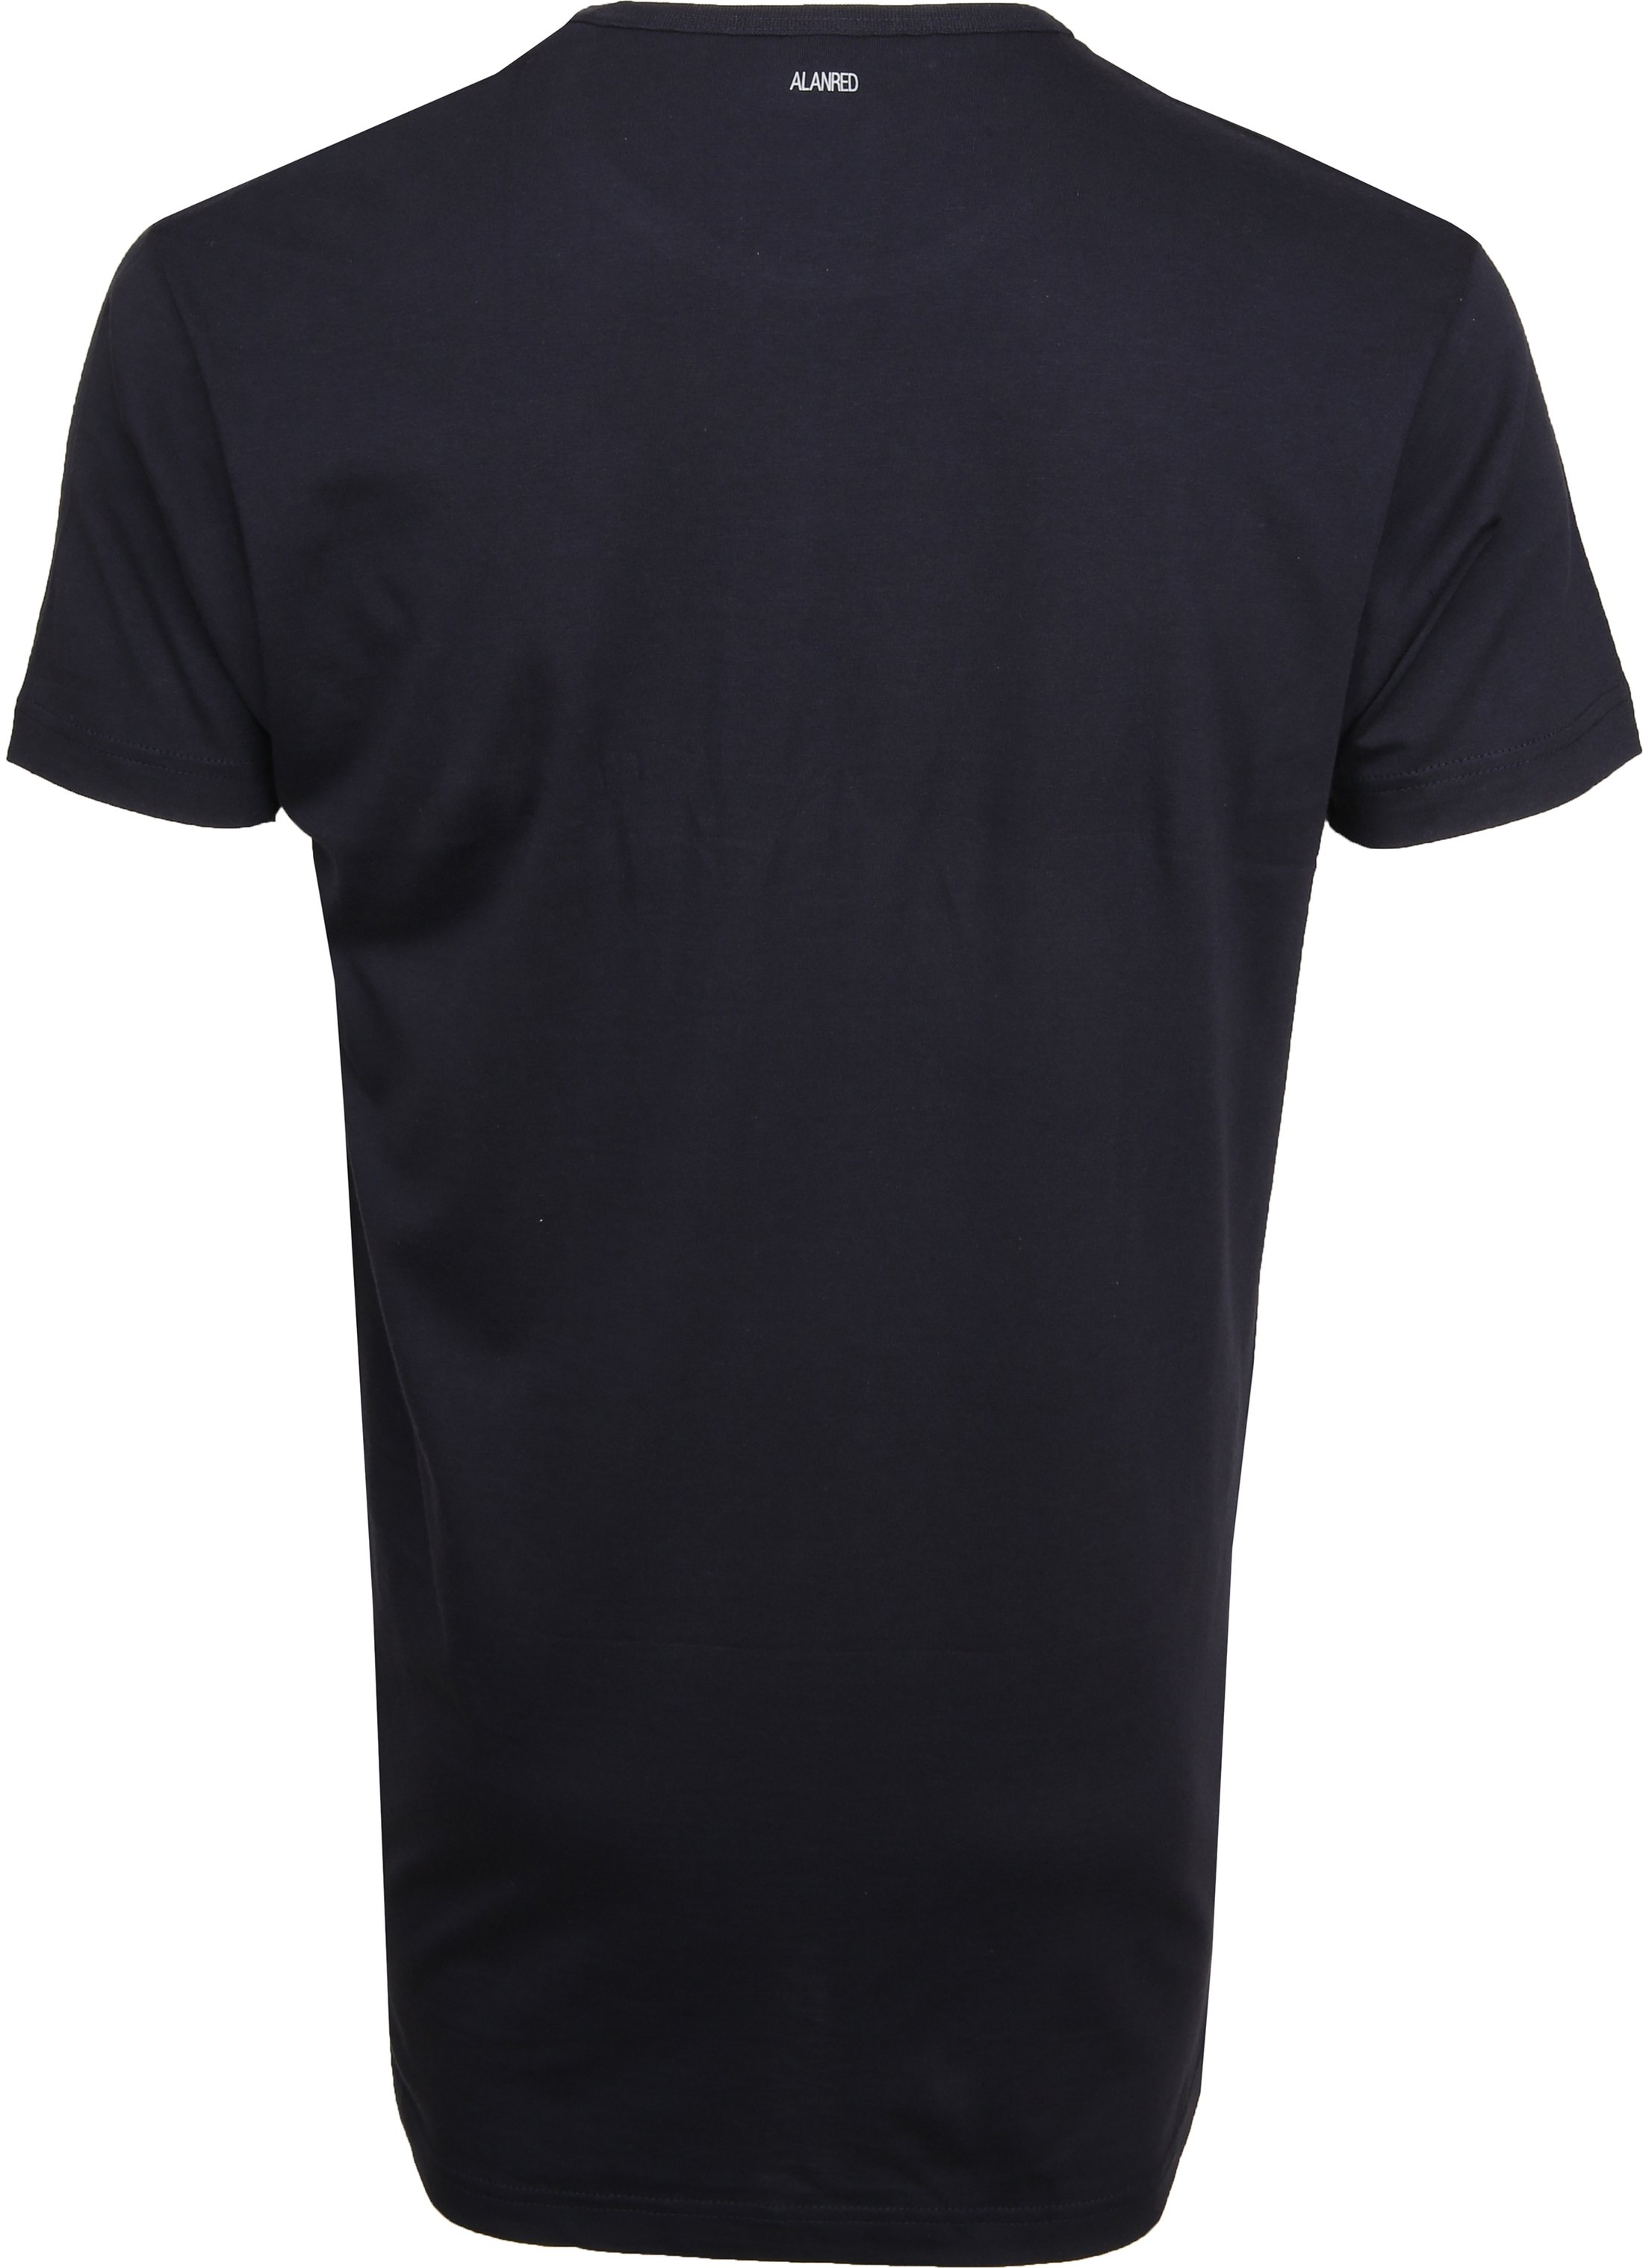 Alan Red Derby Extra Lang T-Shirt Navy (1Pack) foto 2